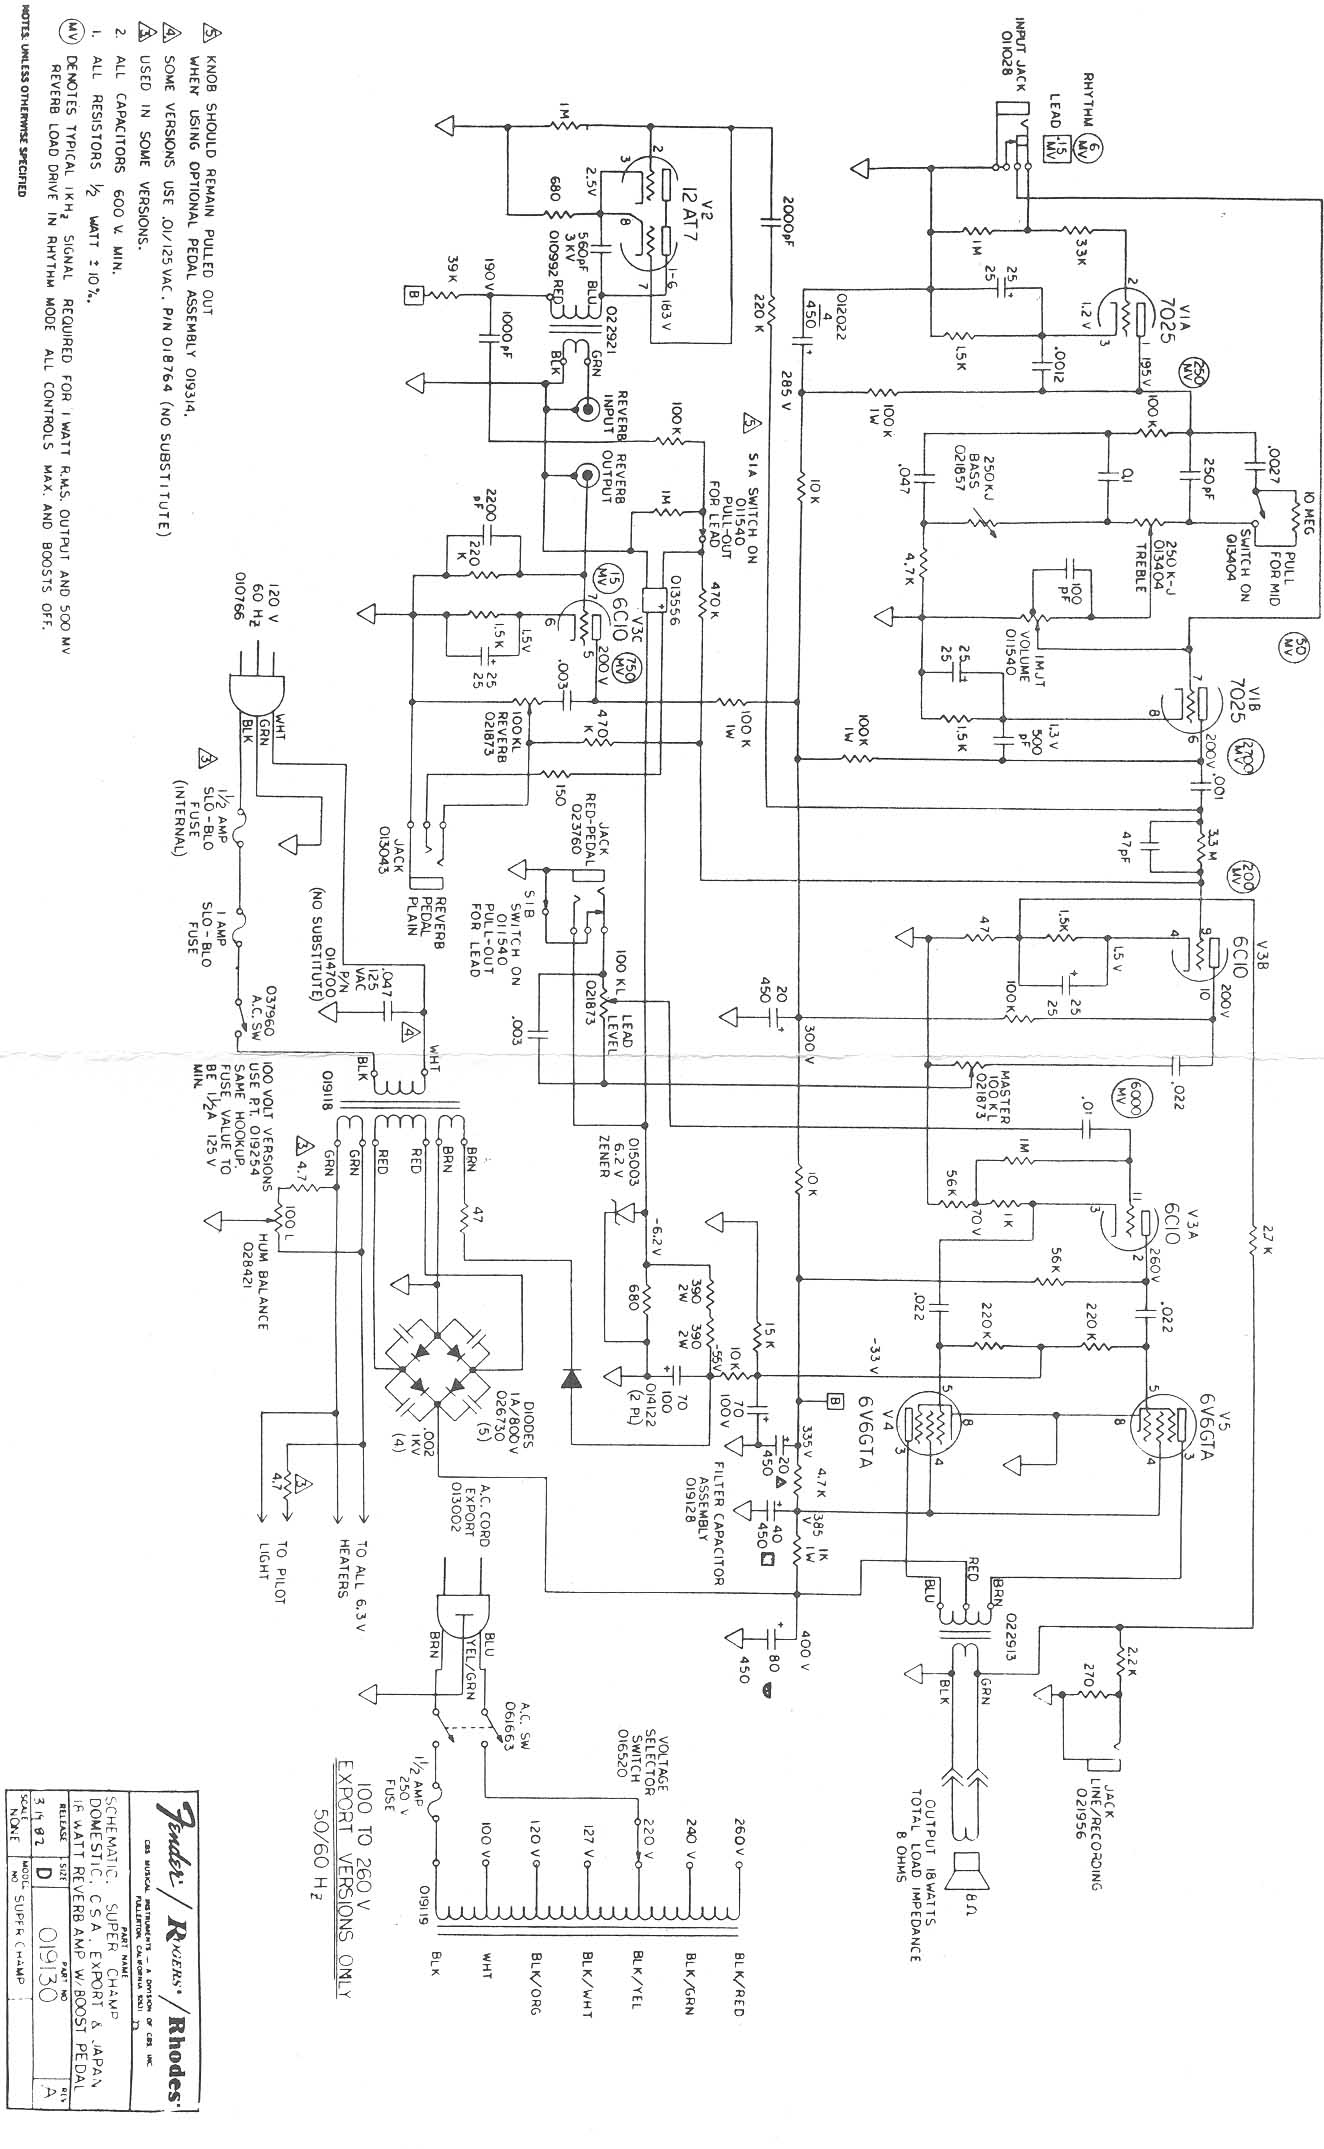 Fender Super Champ Xd Schematic | Wiring Diagram Database on